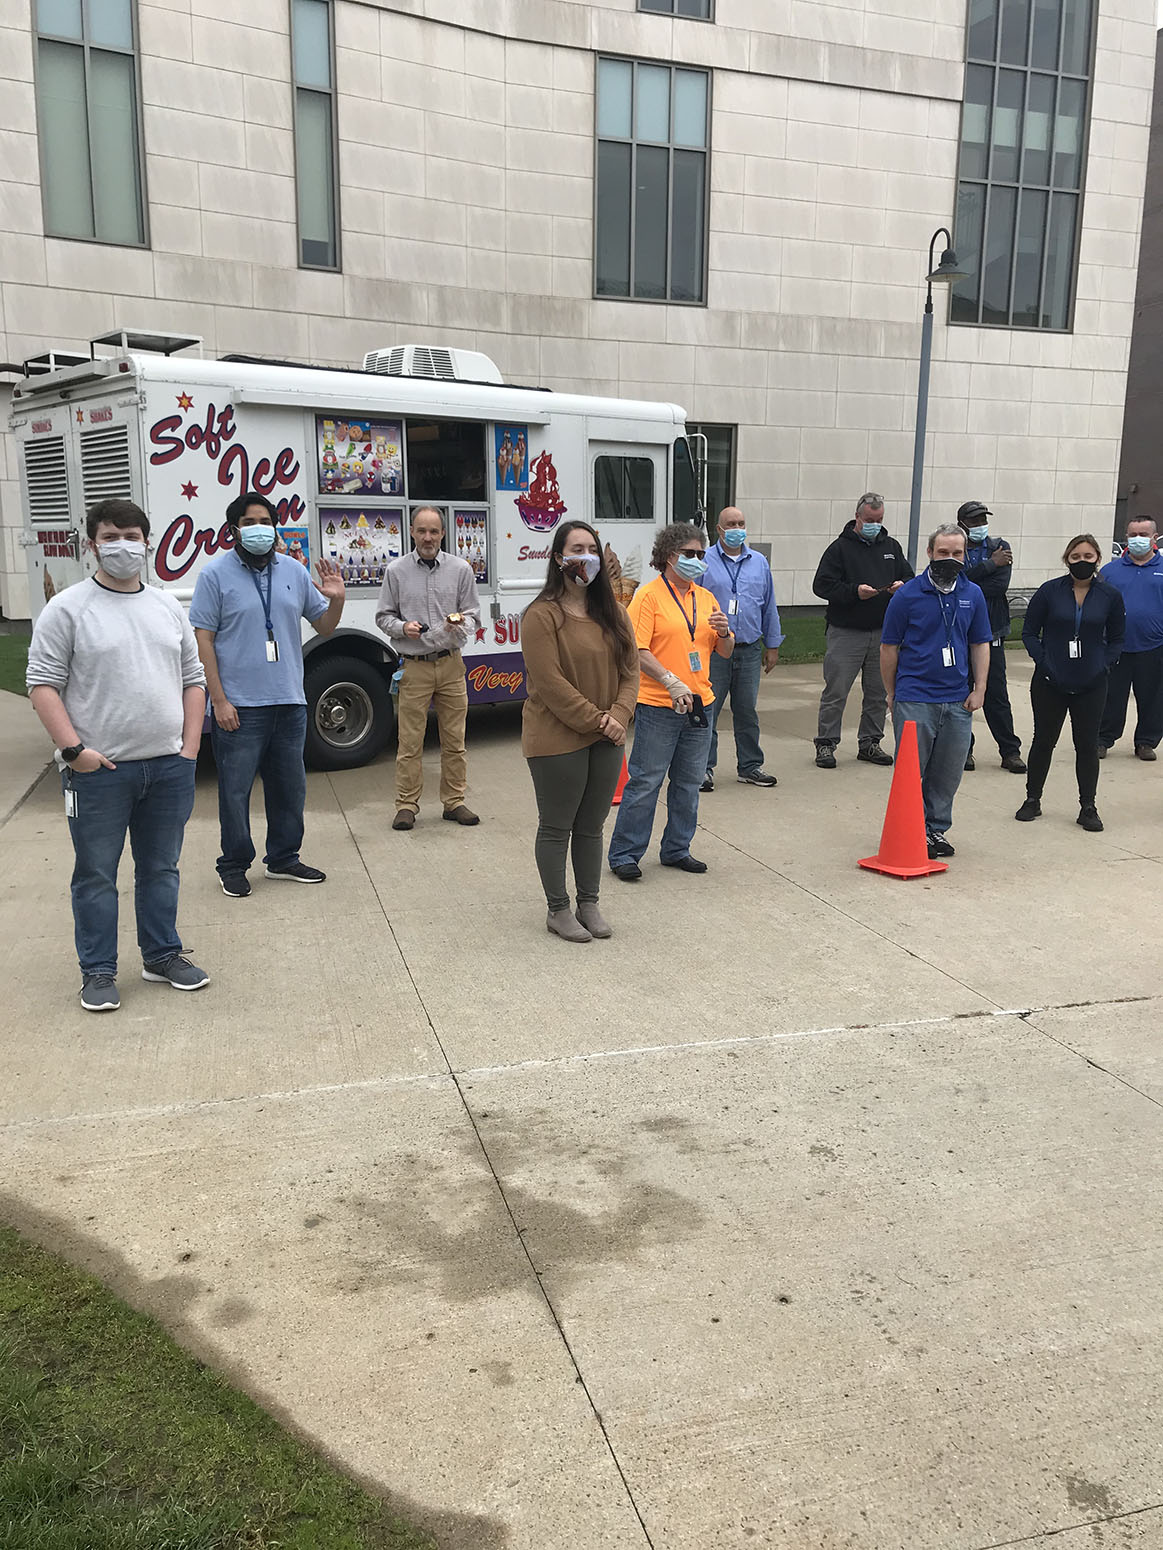 Employees standing in front of ice cream truck